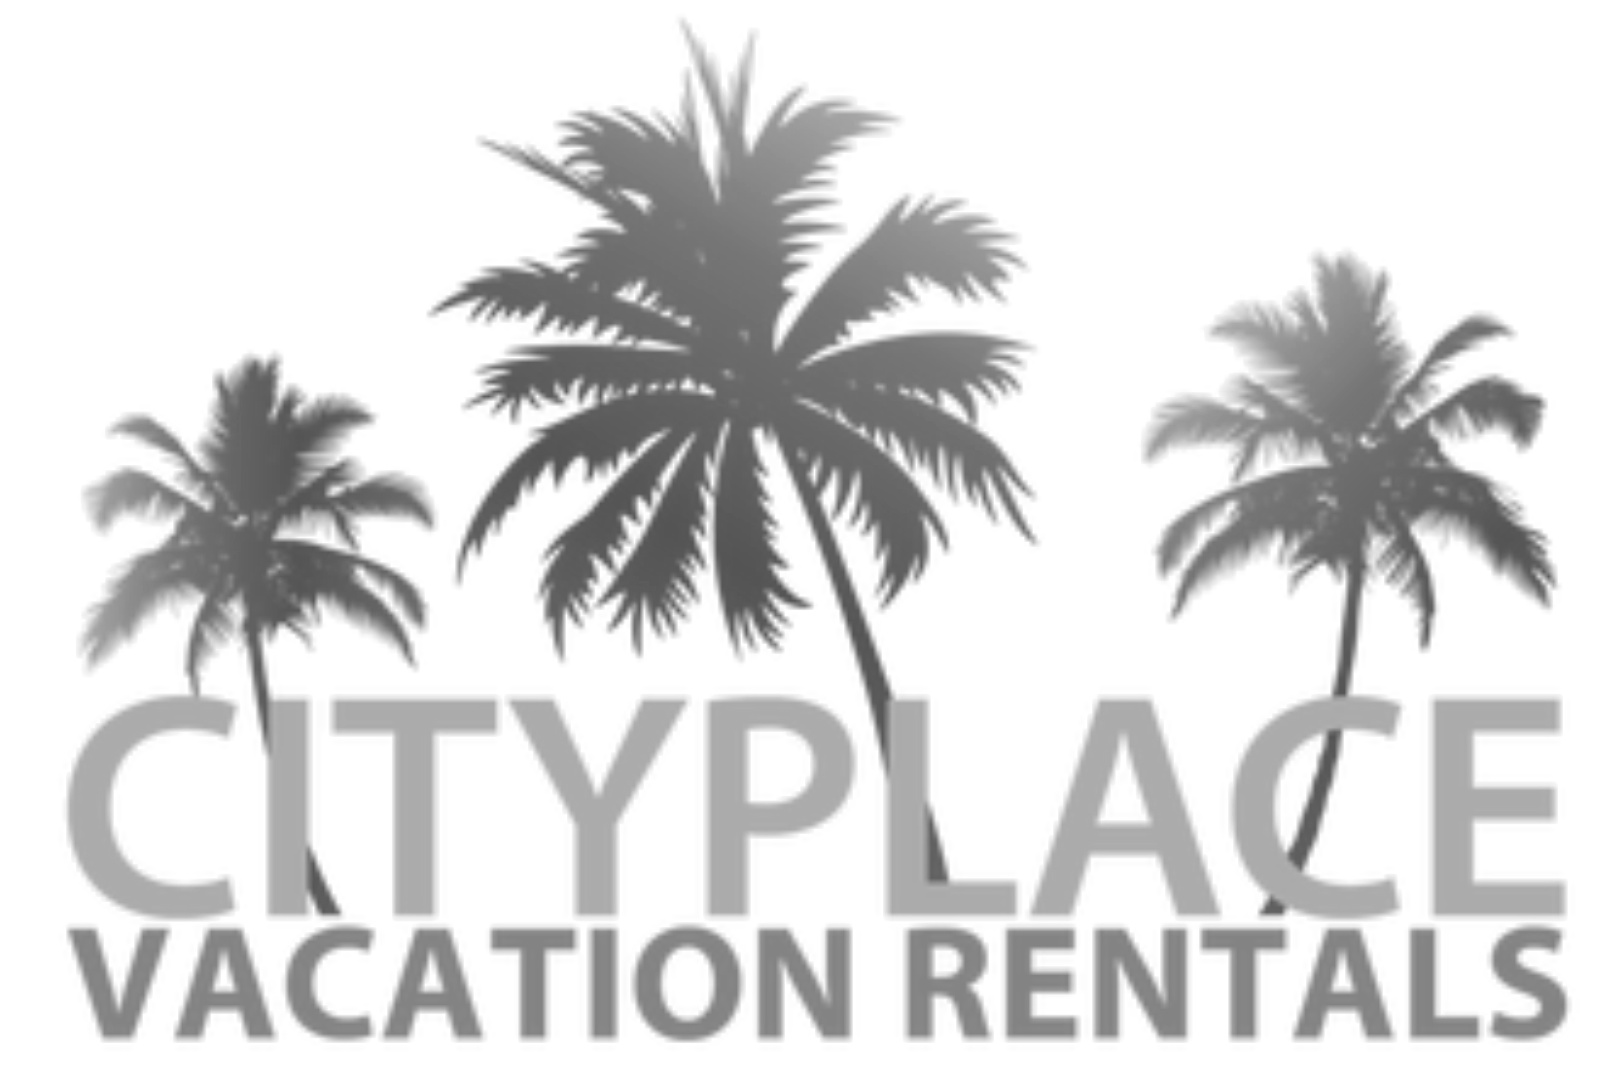 cityplace vacation rentals west palm beach